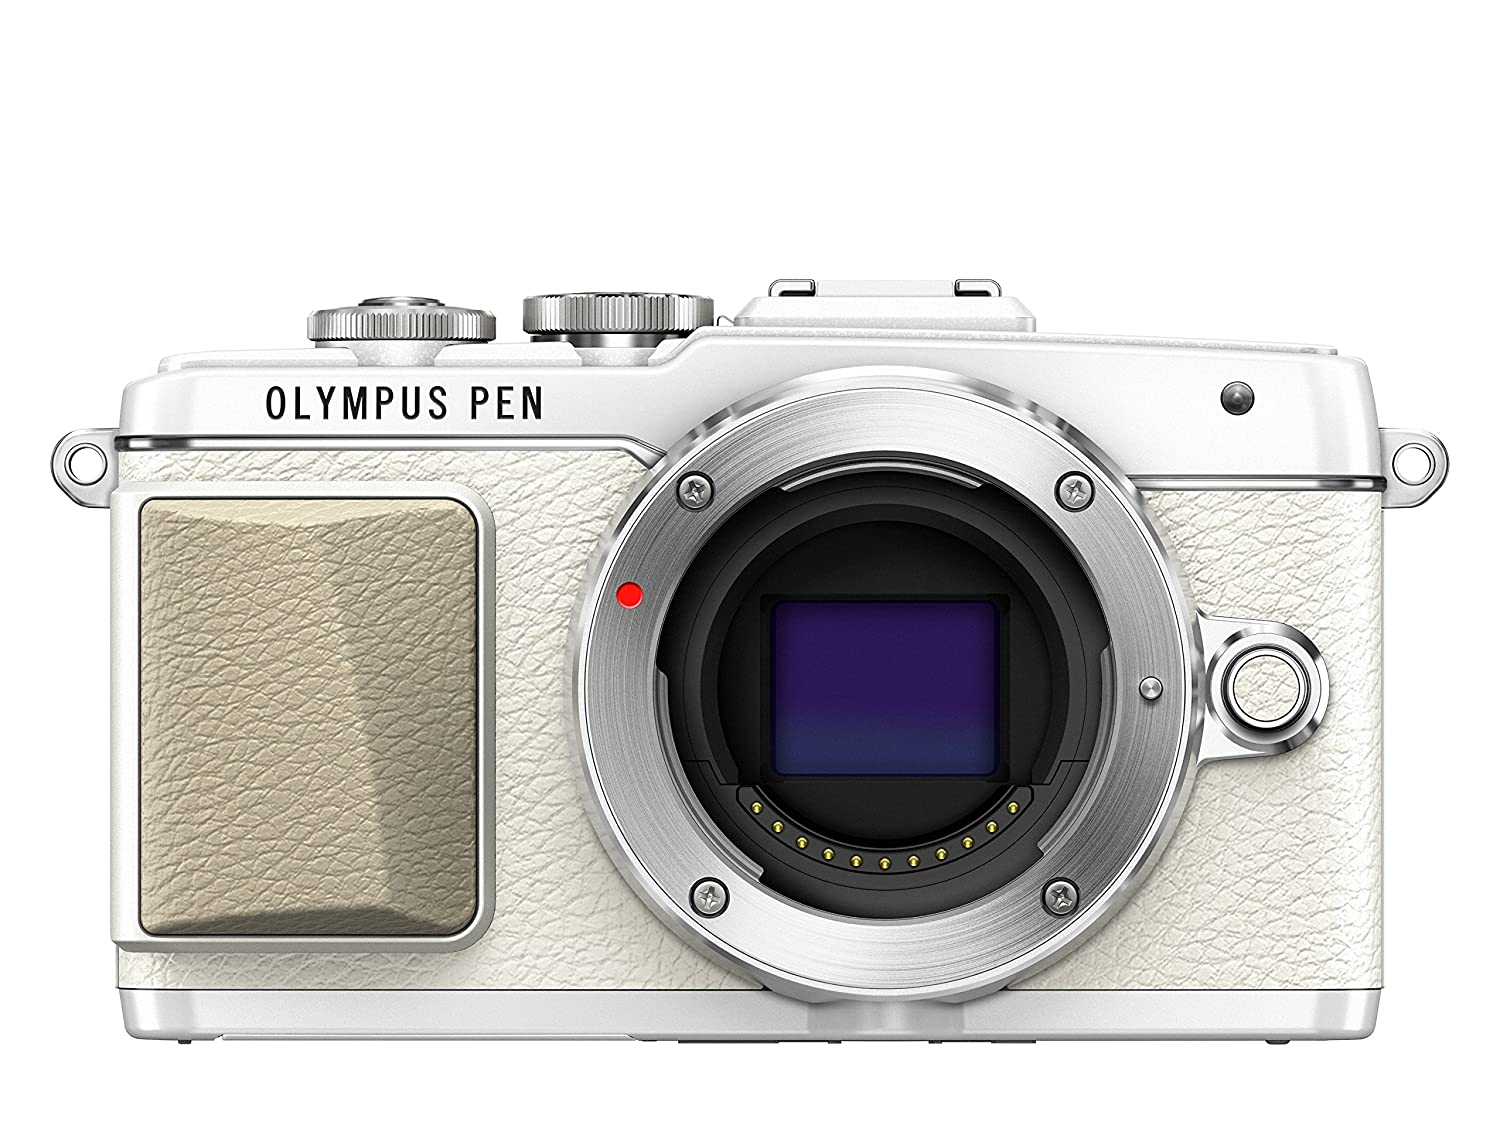 Olympus Pen E Pl7 Interchangeable Lens Camera (16.1 Mp, 3.0 Inch Touchscreen Lcd)   White by Amazon